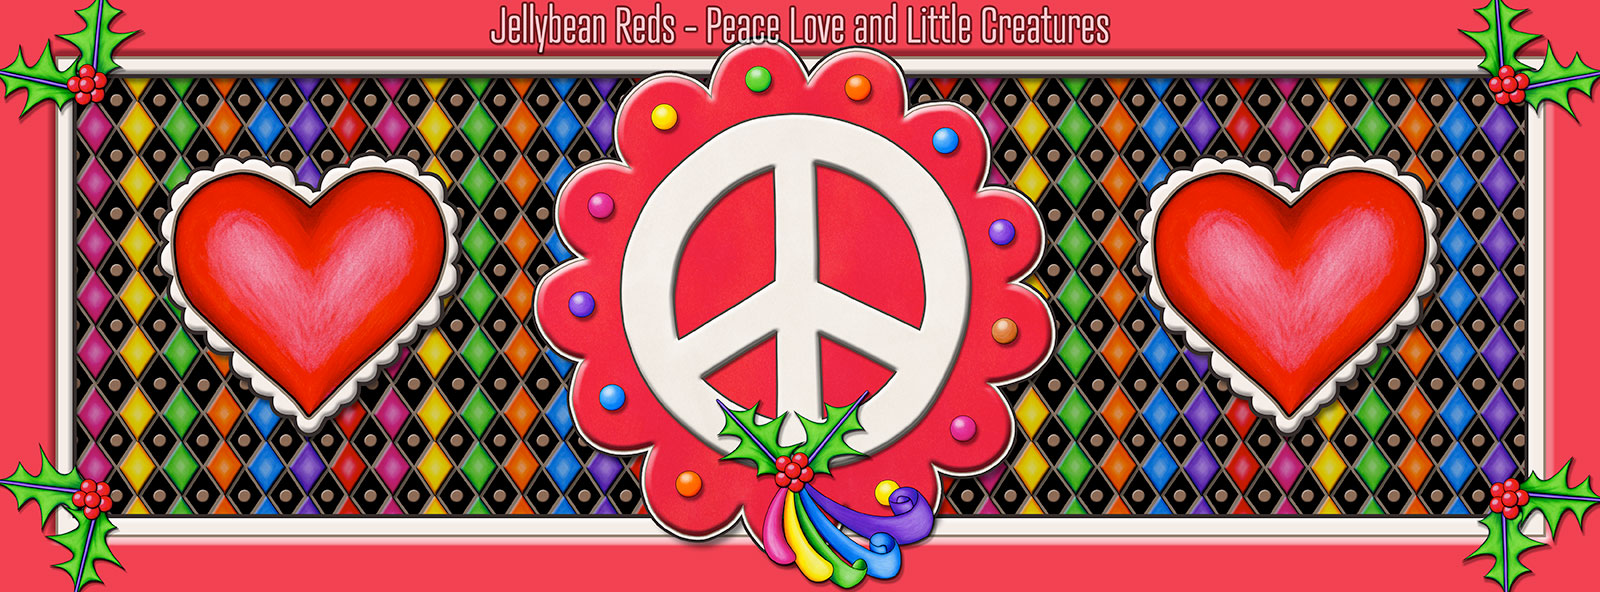 Red Peace Sign Medallion with Rainbow Holly Ribbon and Hearts